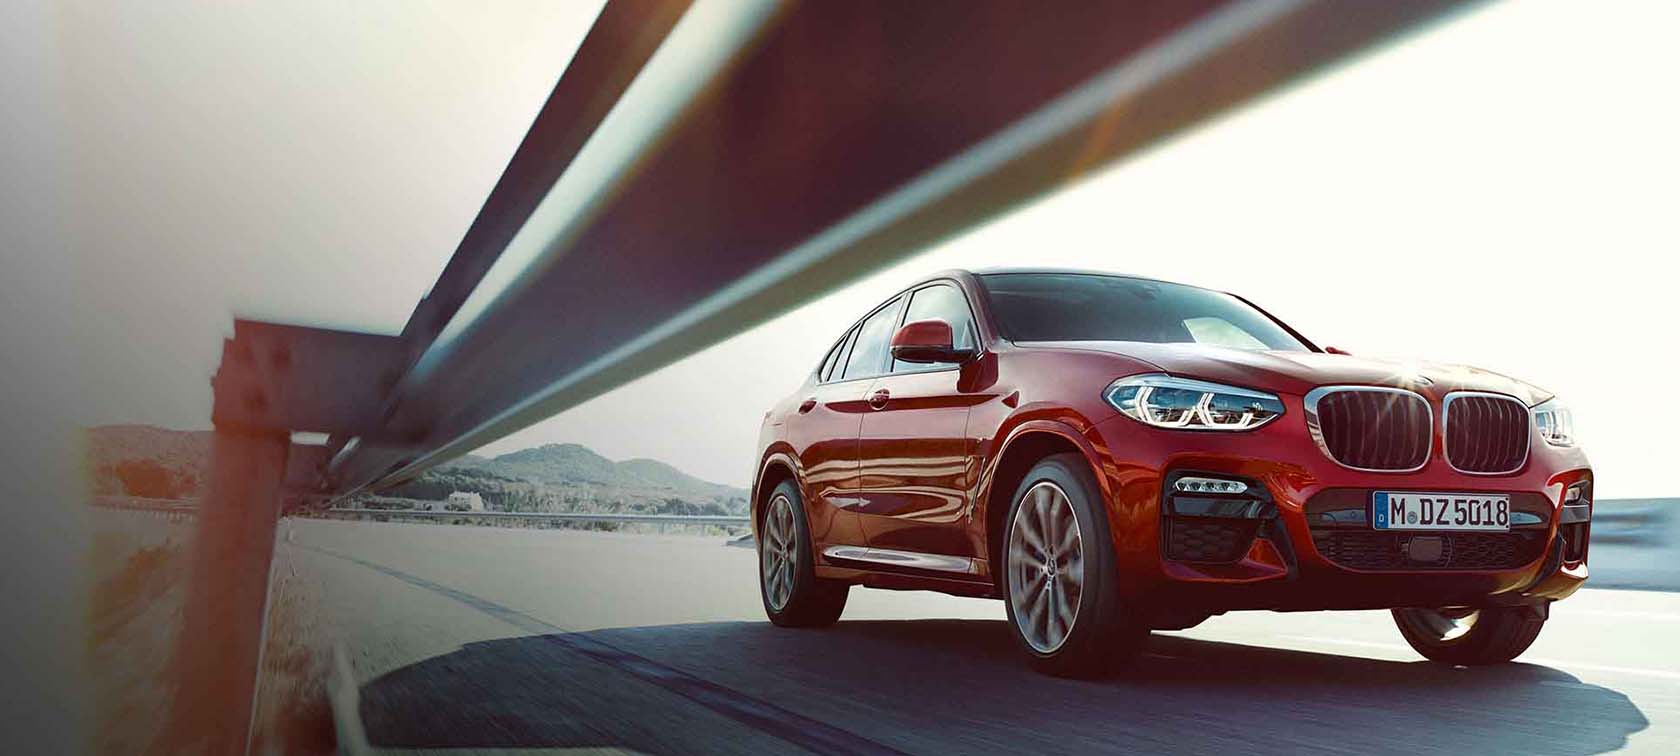 The BMW X4 SERIES